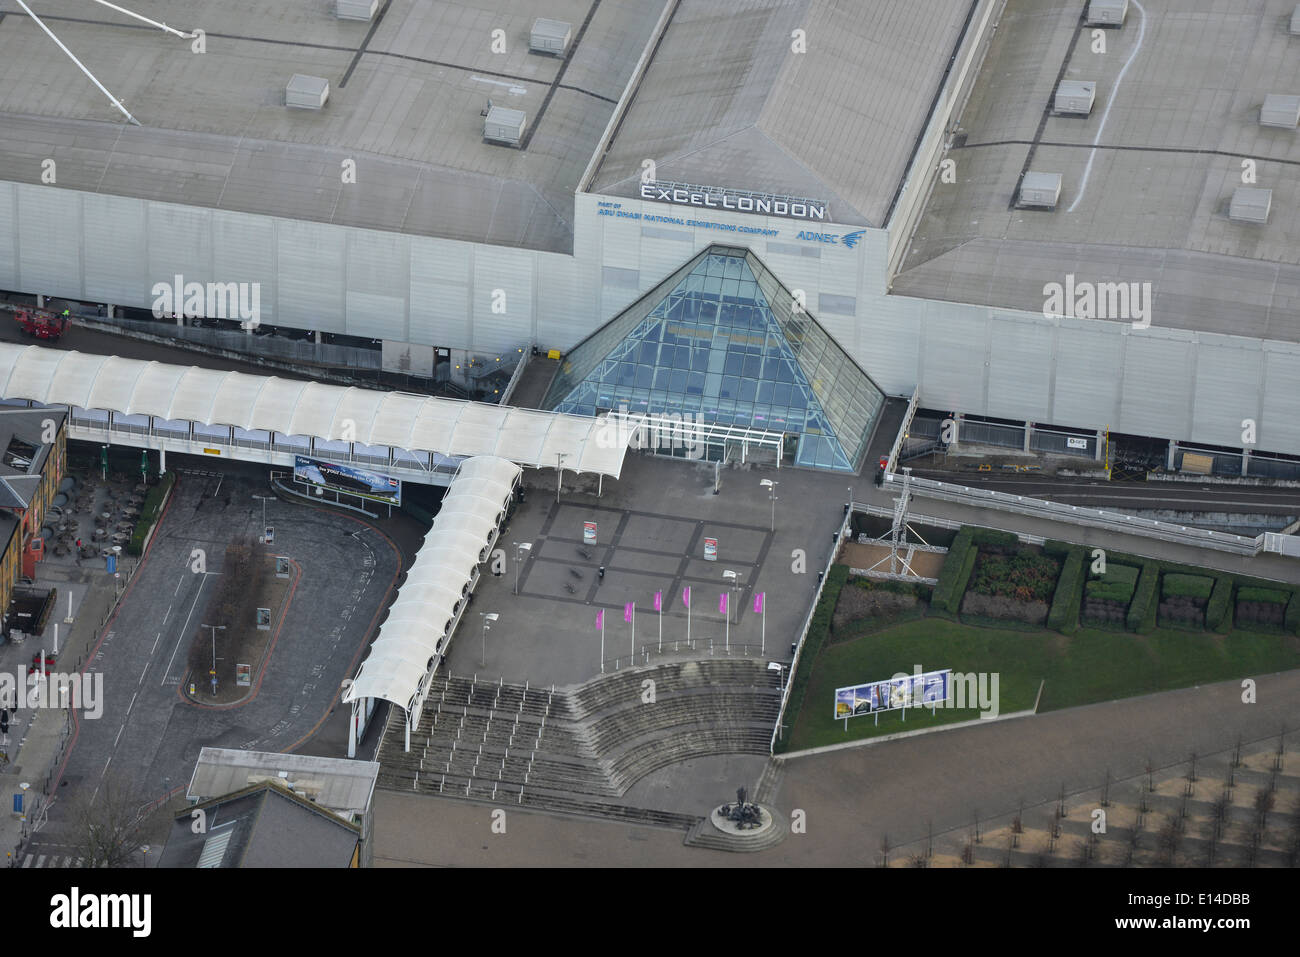 A close-up aerial view showing the main entrance to the Excel Centre in London - Stock Image